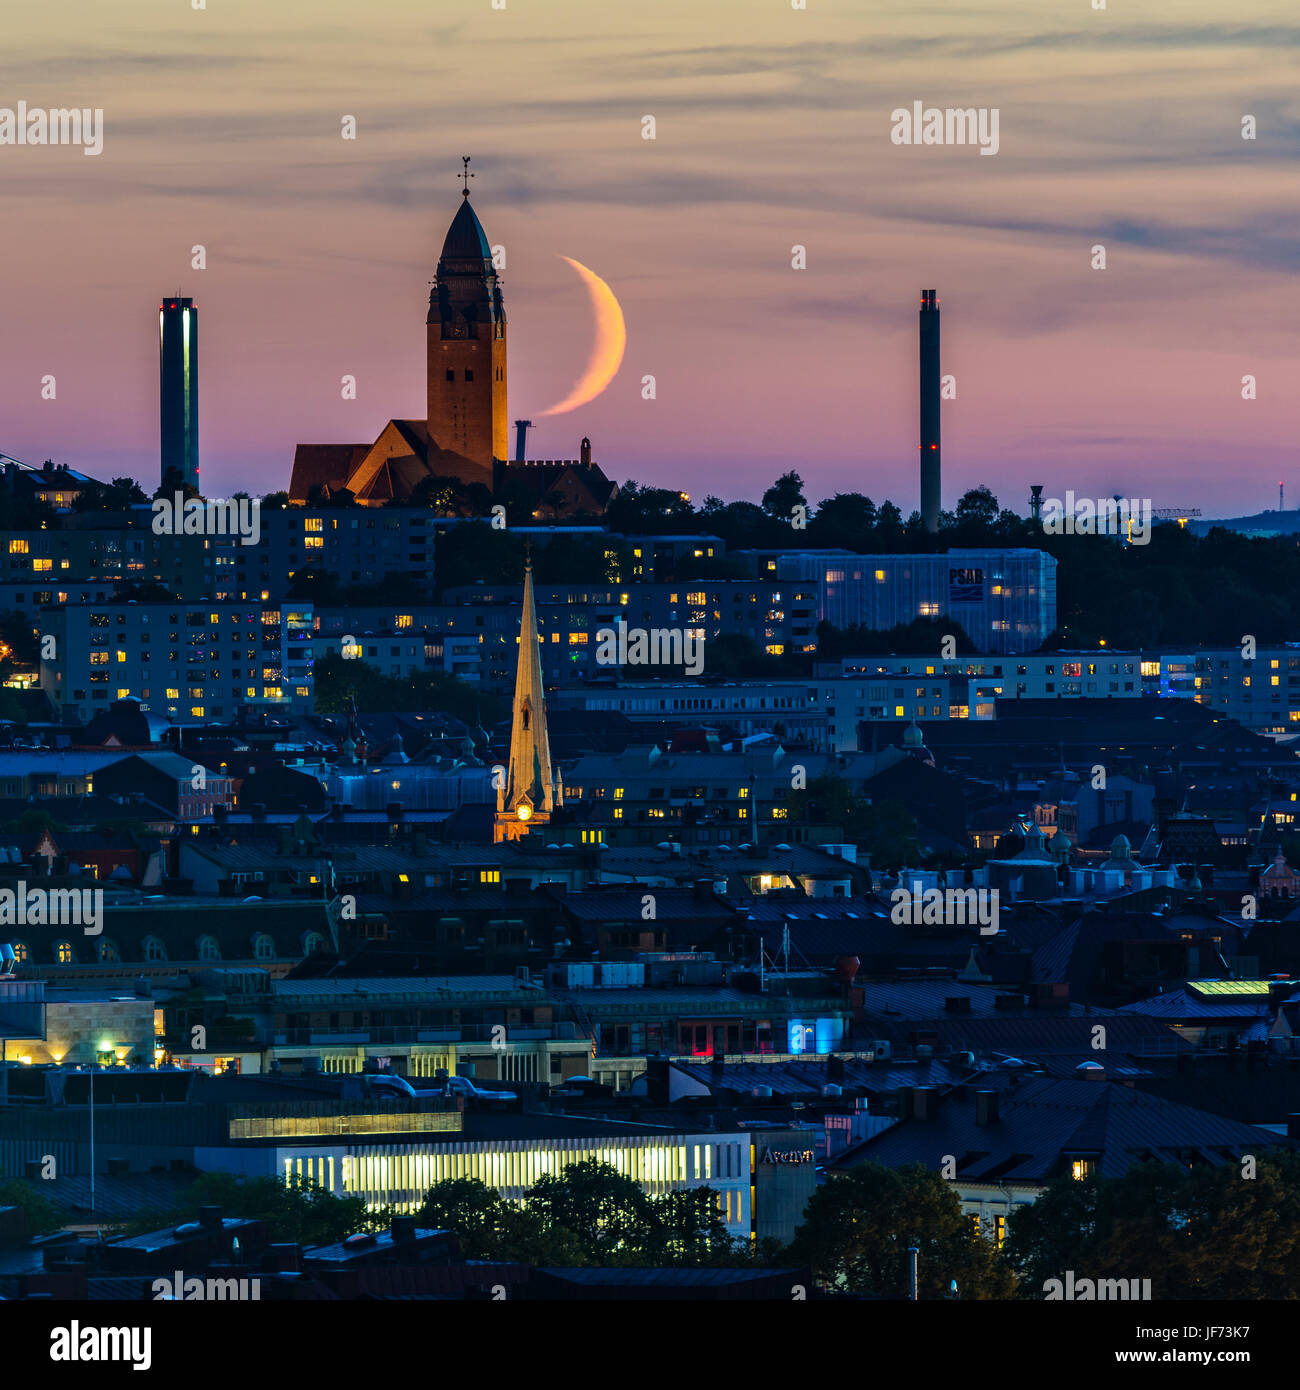 Crescent moon above city at dusk - Stock Image